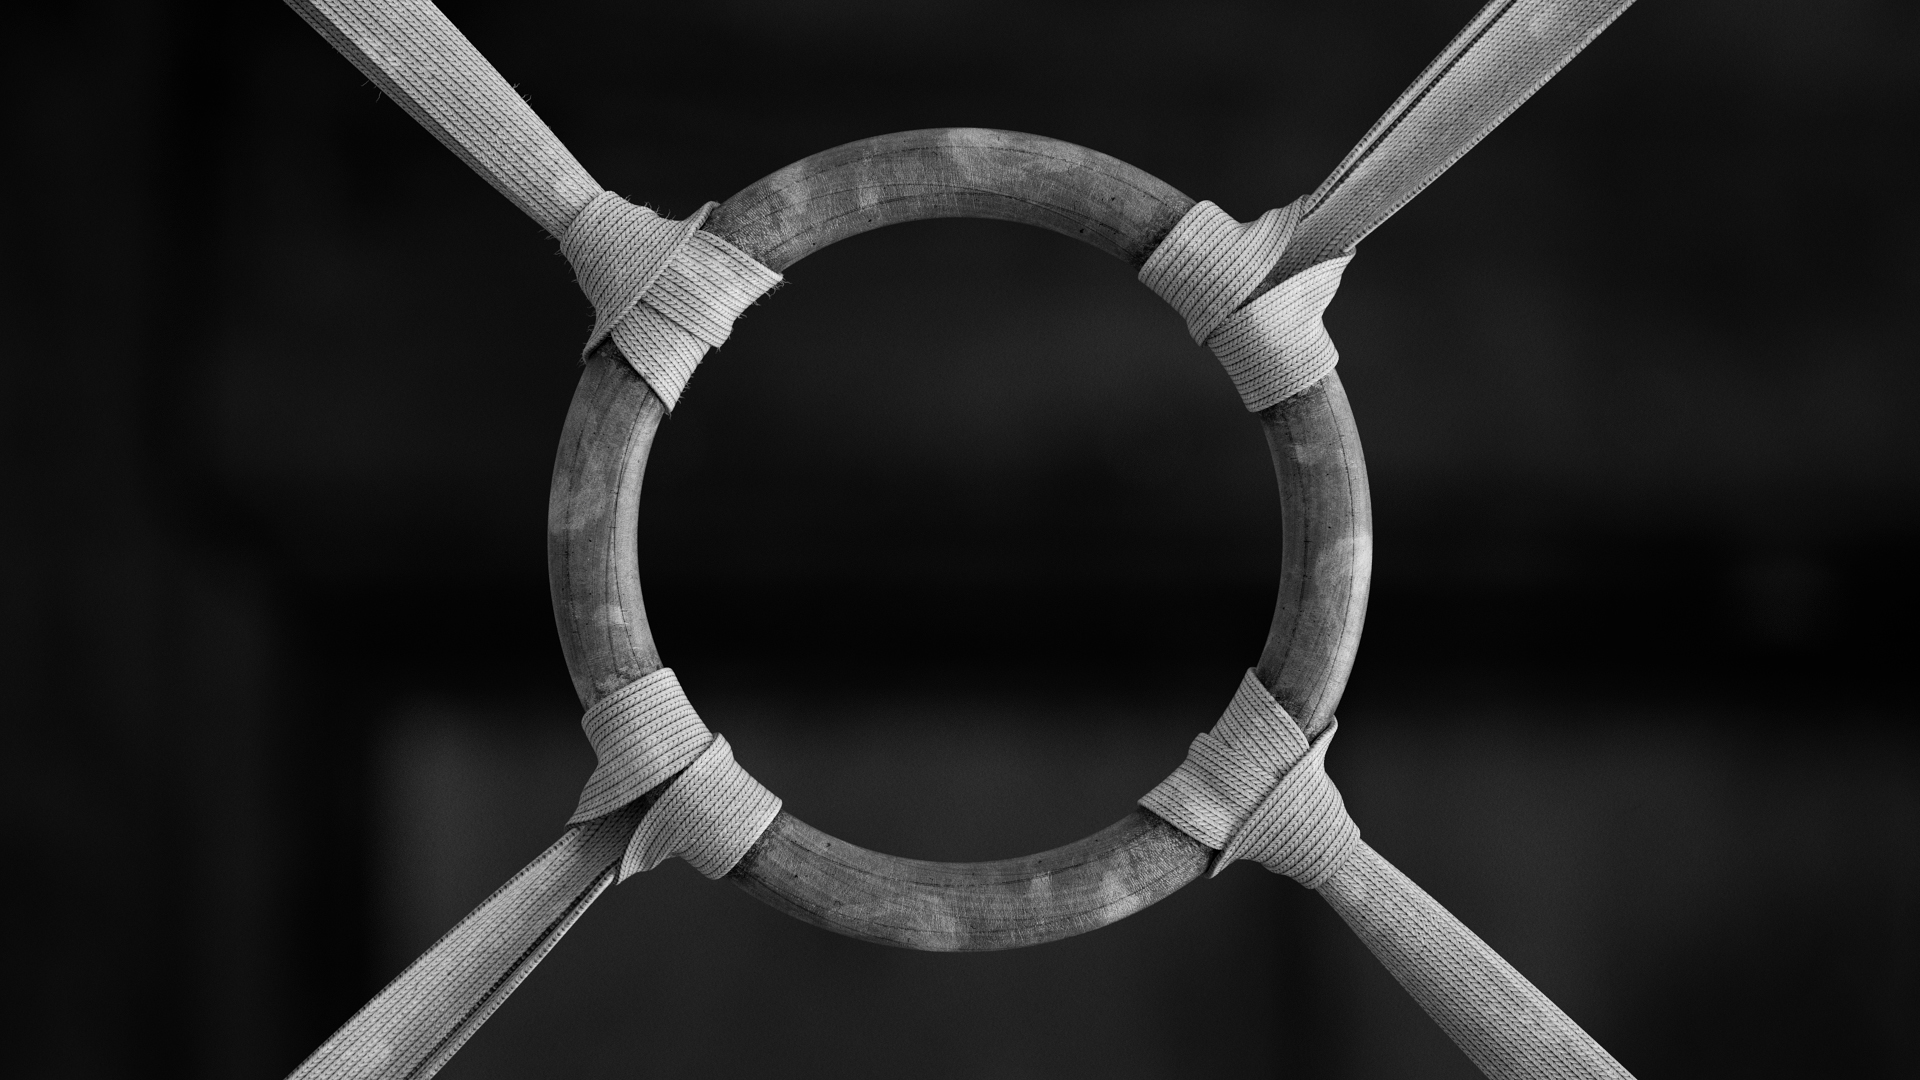 Gym Rings - Style frame 02